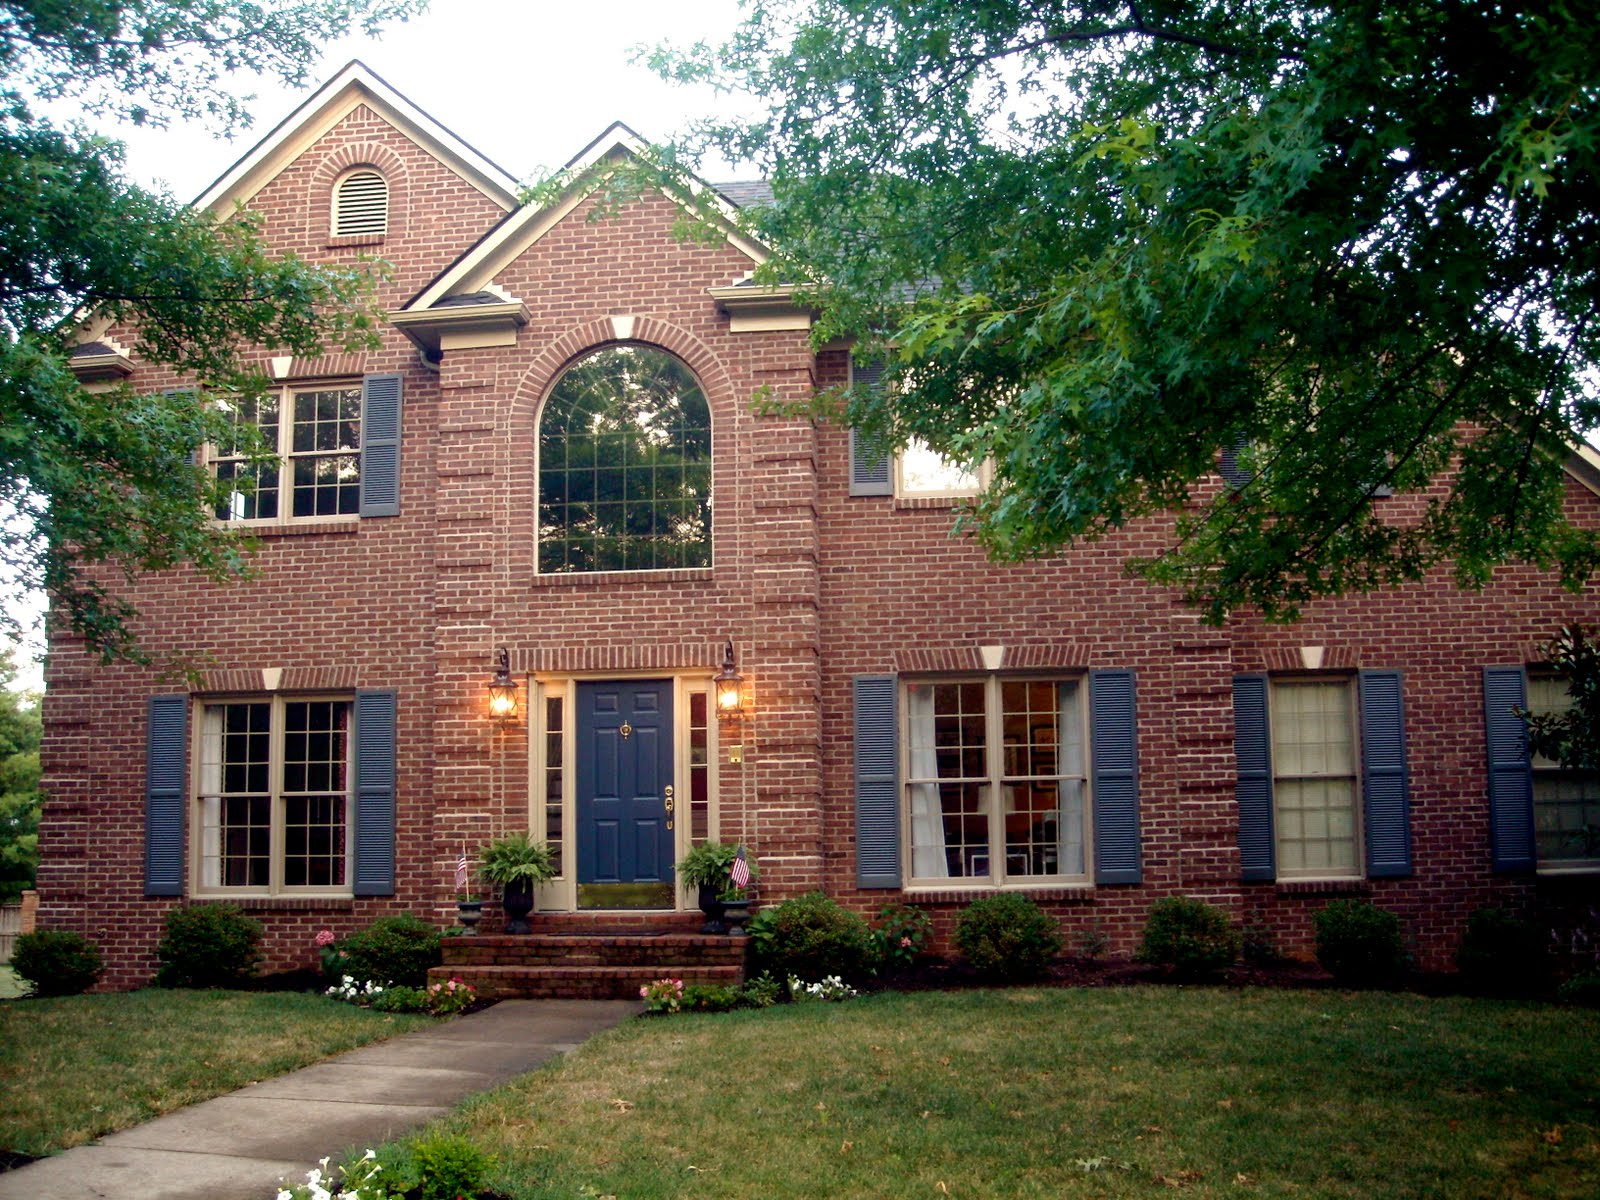 Exterior Color Combinations For Brick Houses Exterior House Color - Brick home exterior color schemes